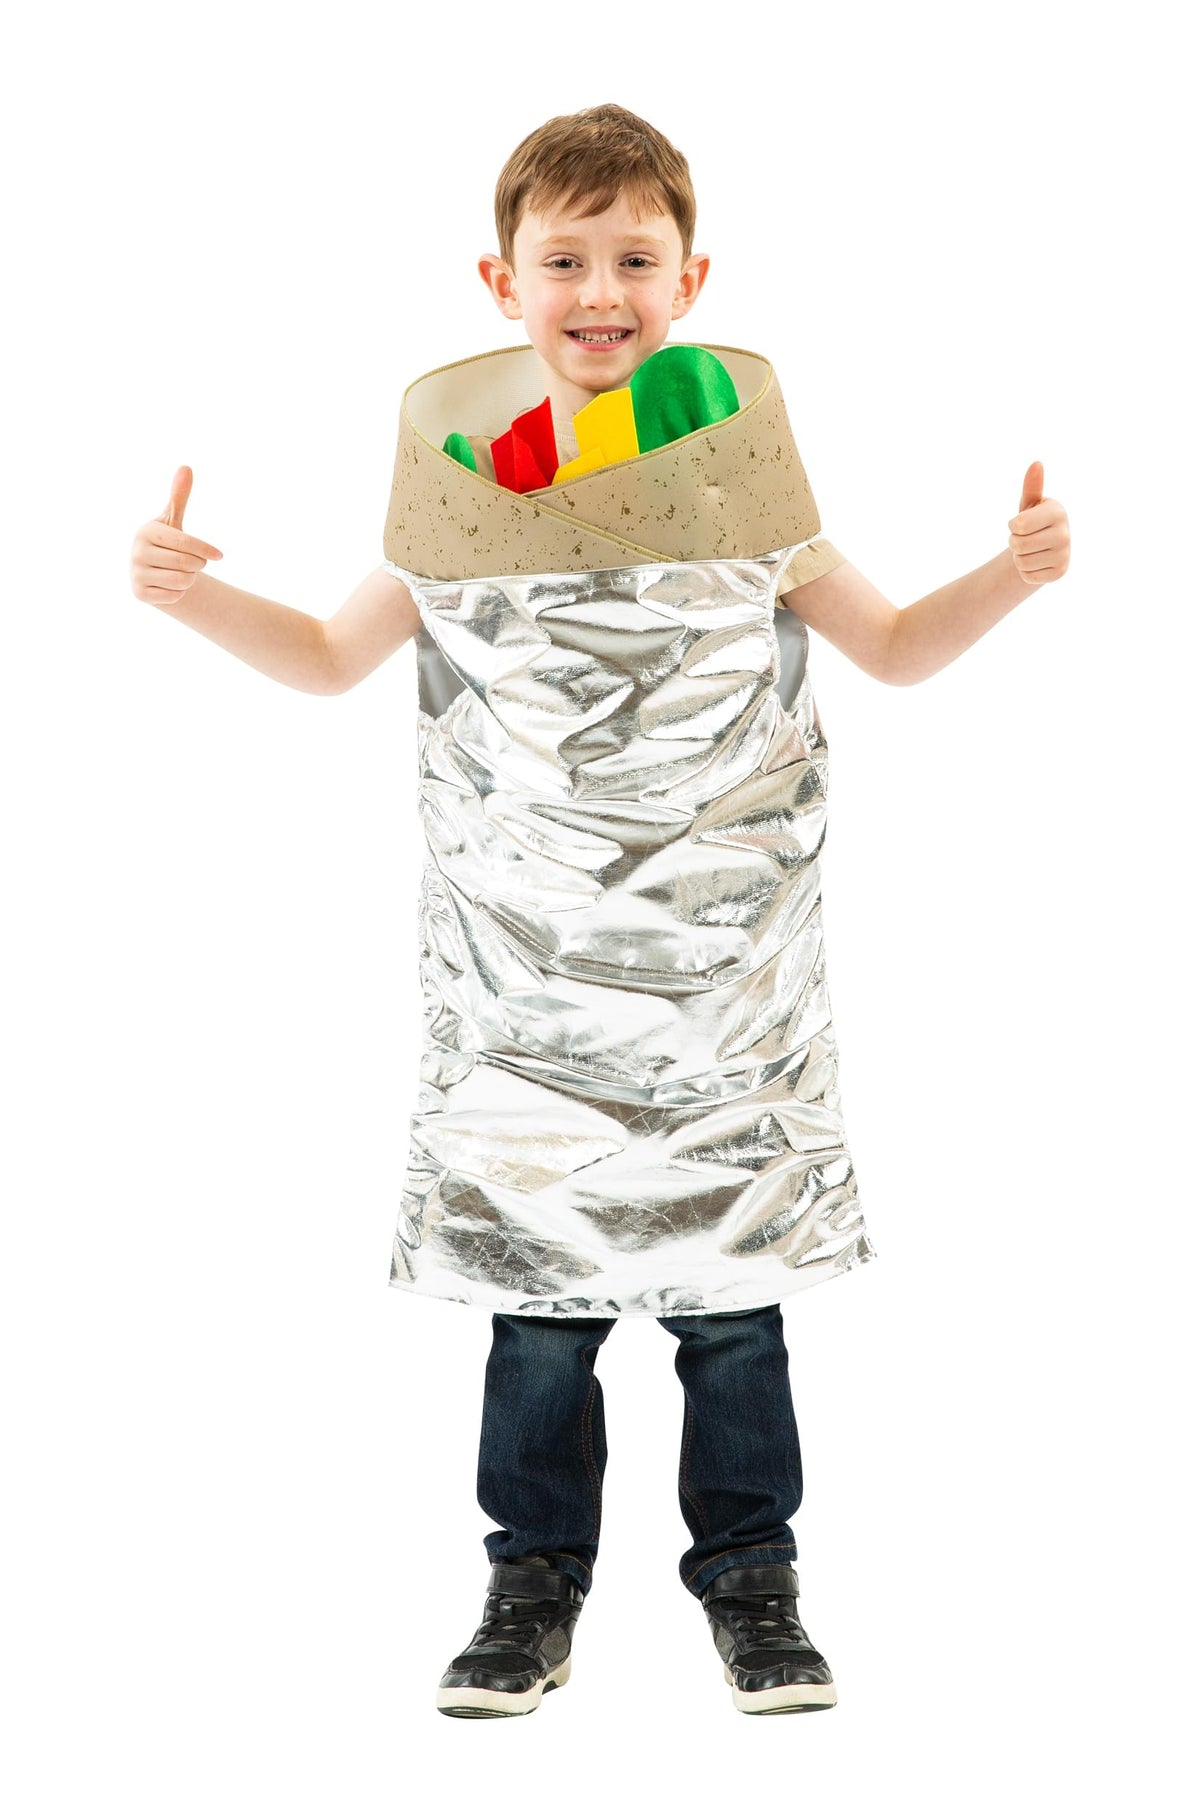 Burrito Costume For Kids | Easy Pull Over Design | Sized To Fit Most Children